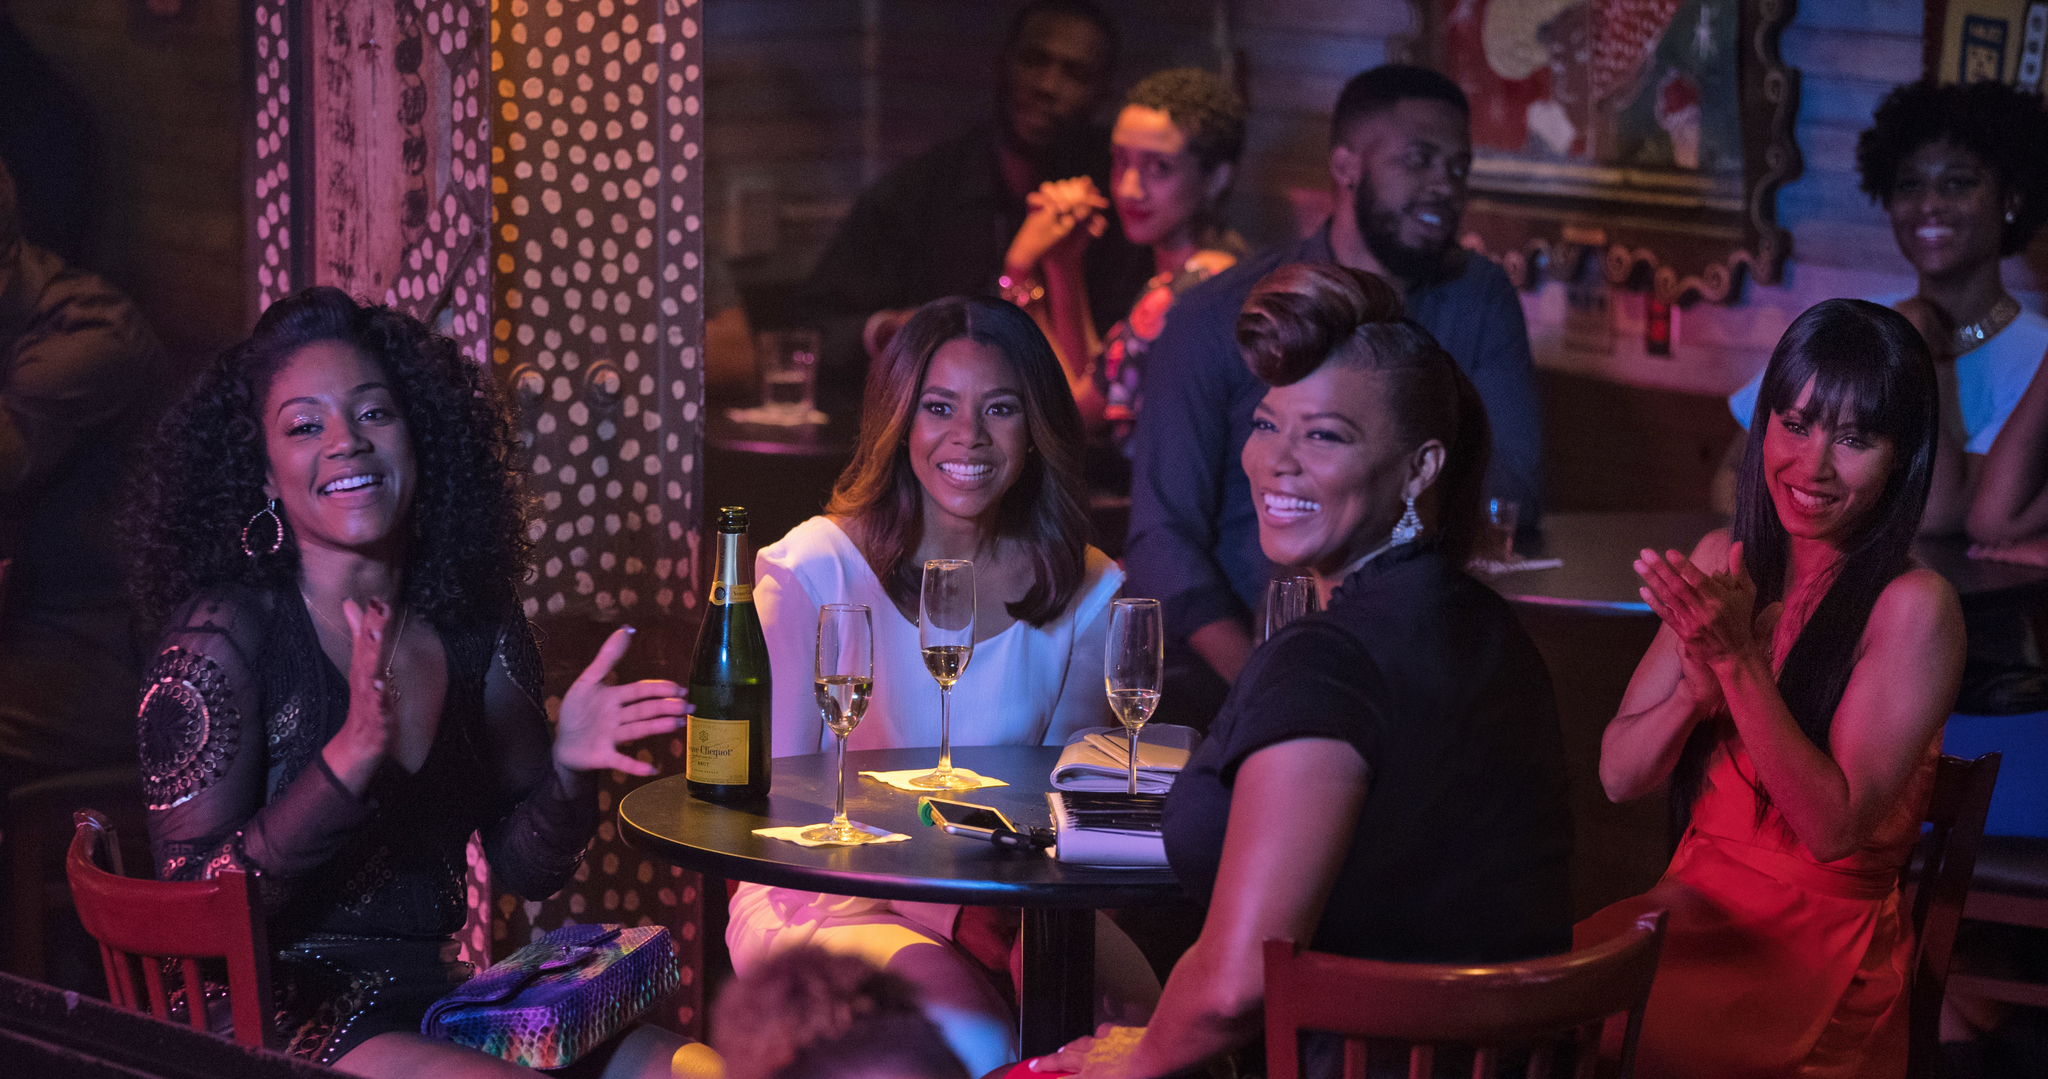 17. Girls Trip (2017): This movie has a wonderful cast, and a sequel would be fun.